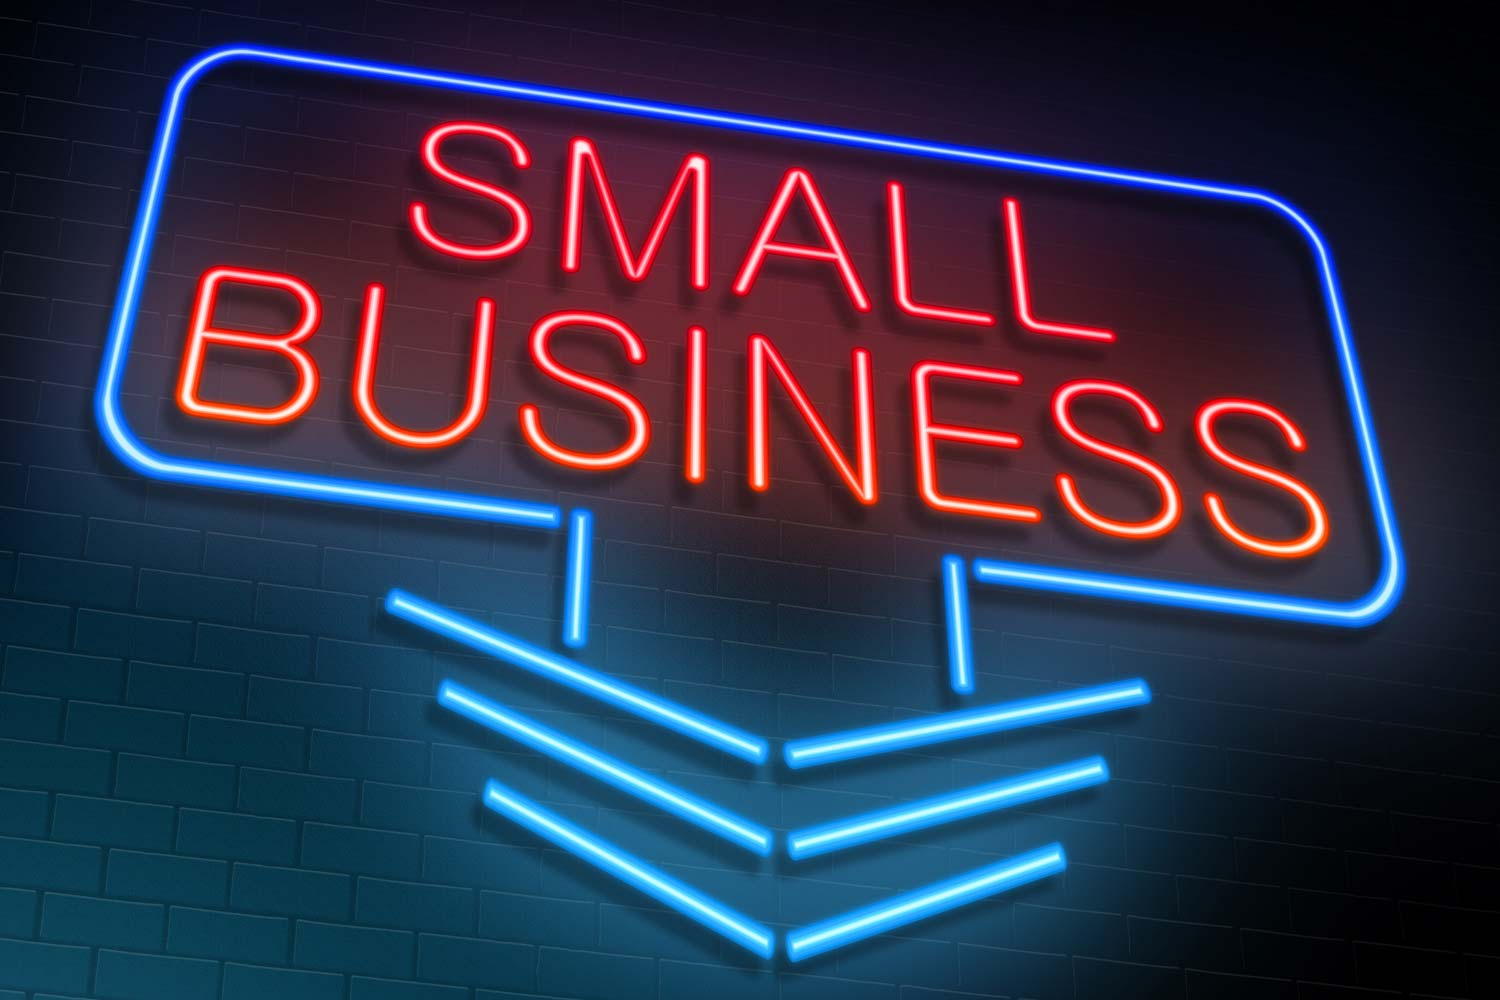 Neon sign reading 'Small Business'